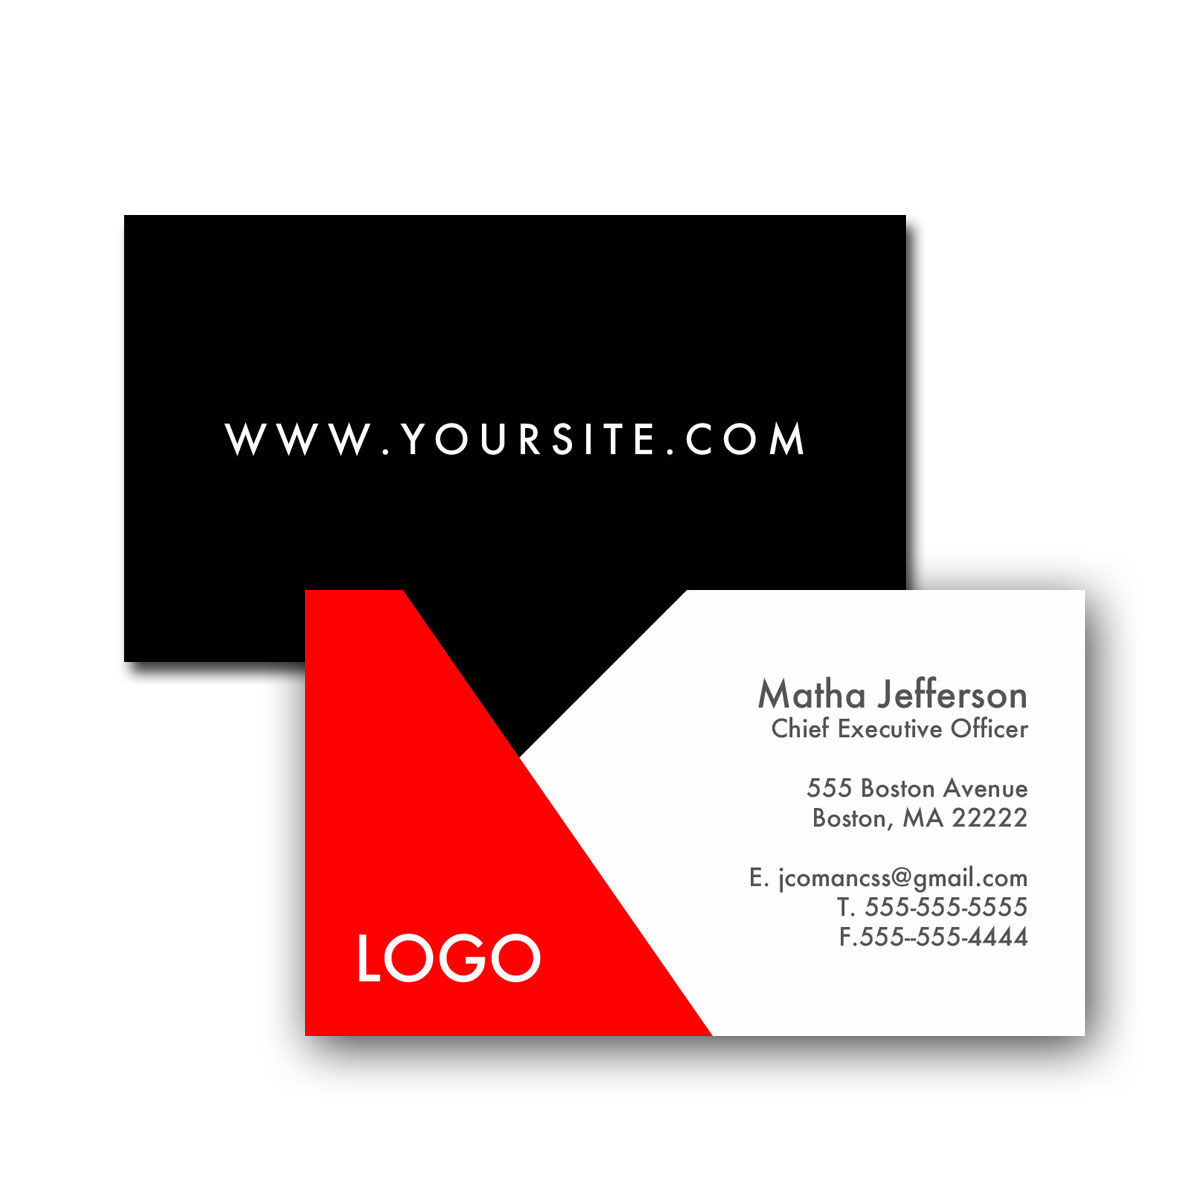 standard business card designs - Standard Business Card